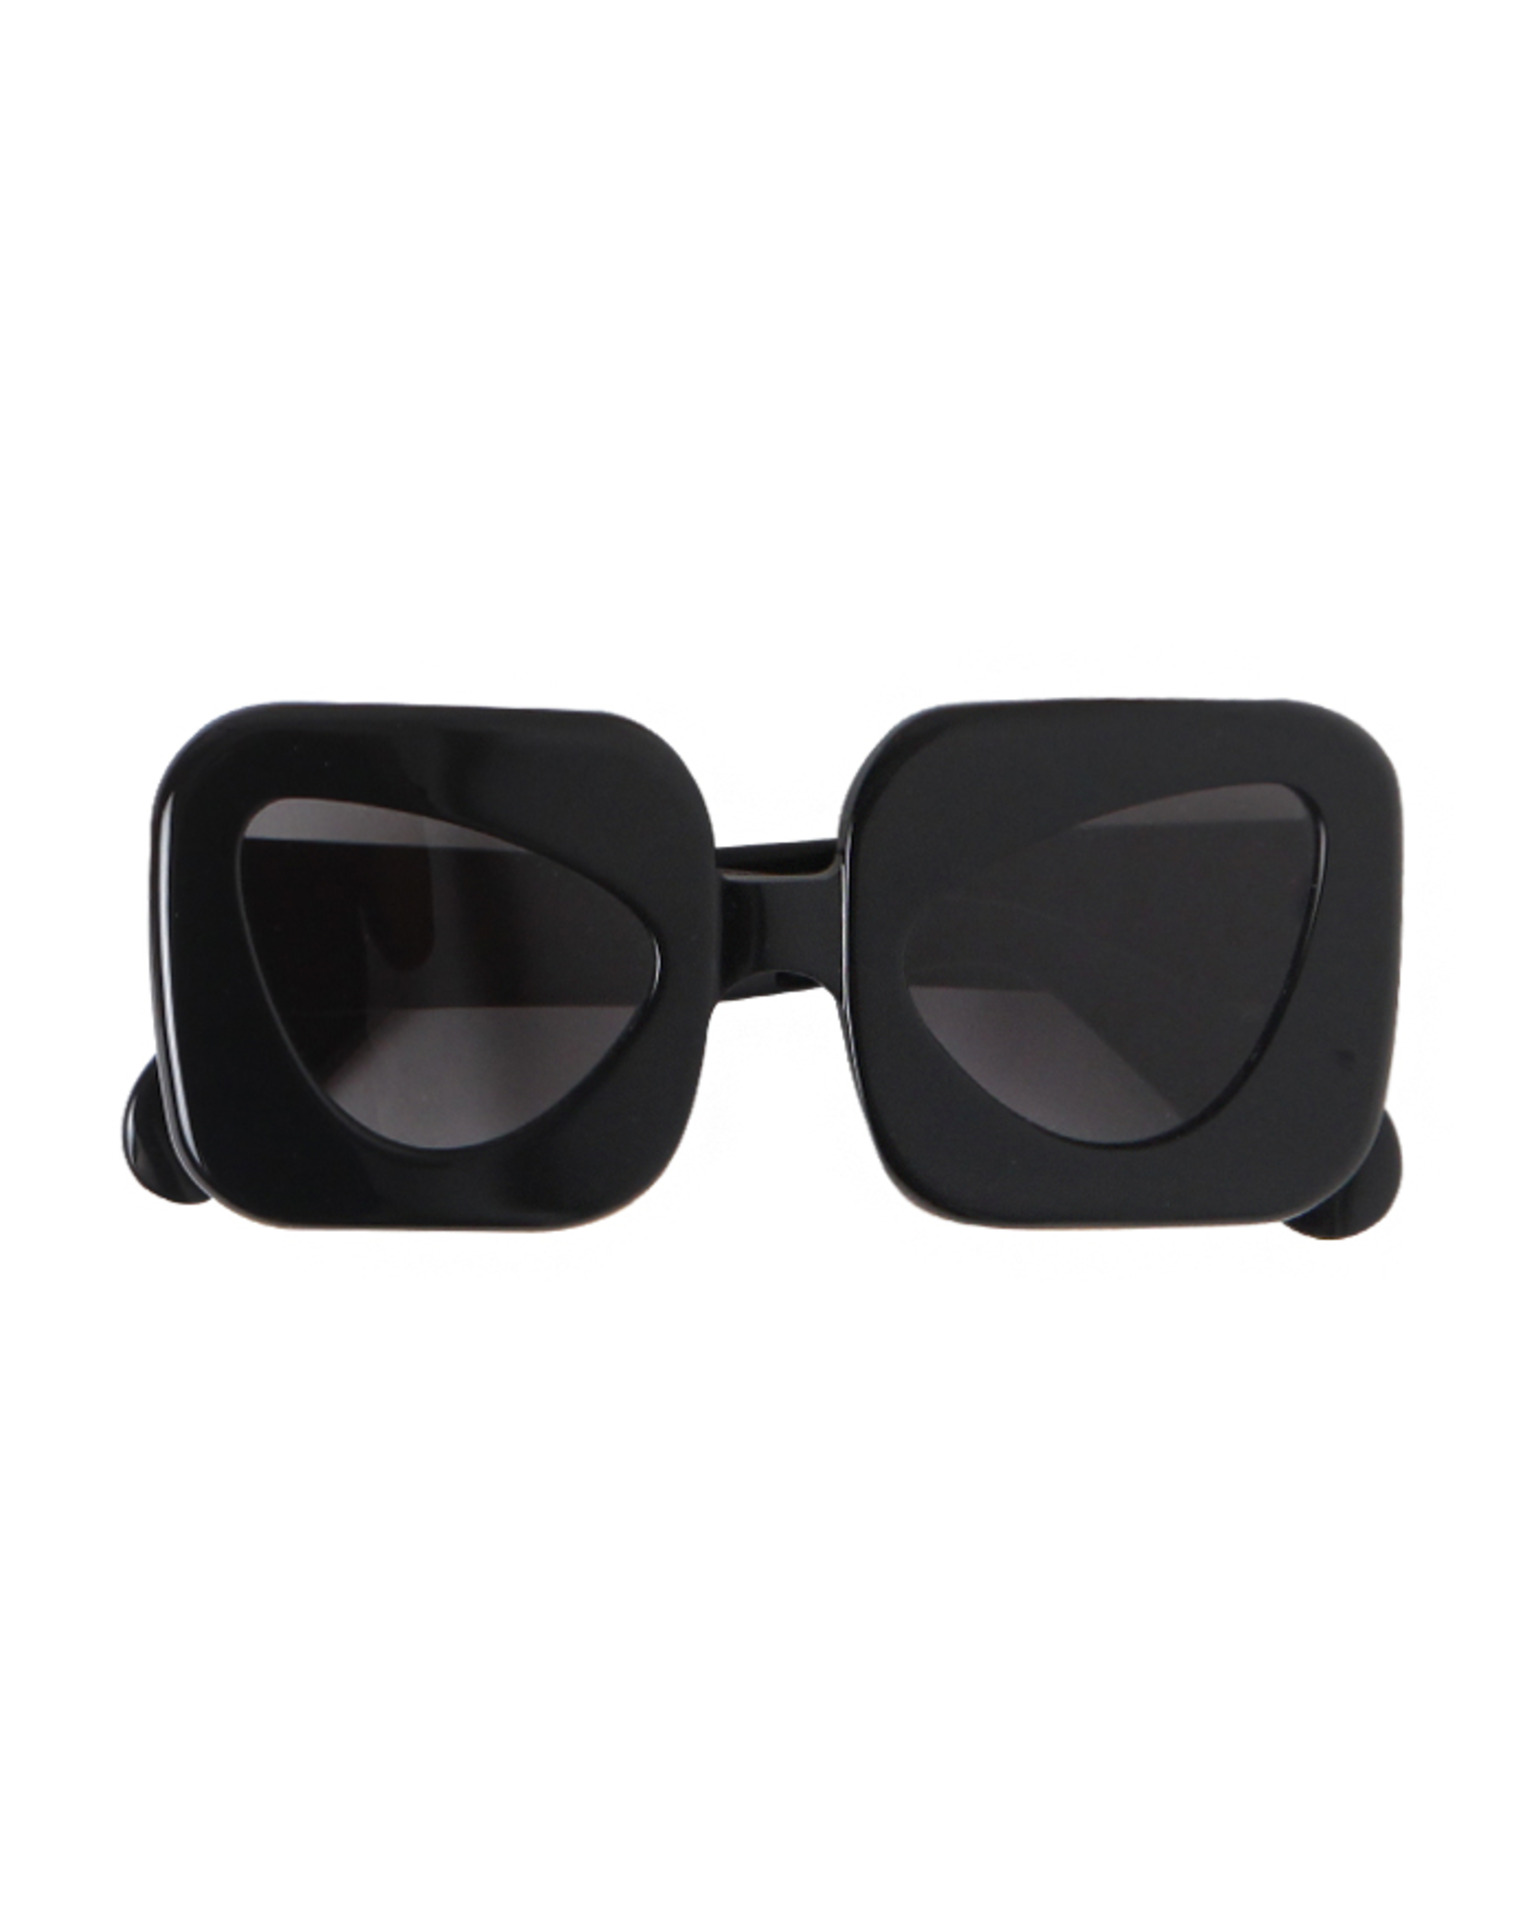 BOLD SQUARE FRAME SUNGLASSES